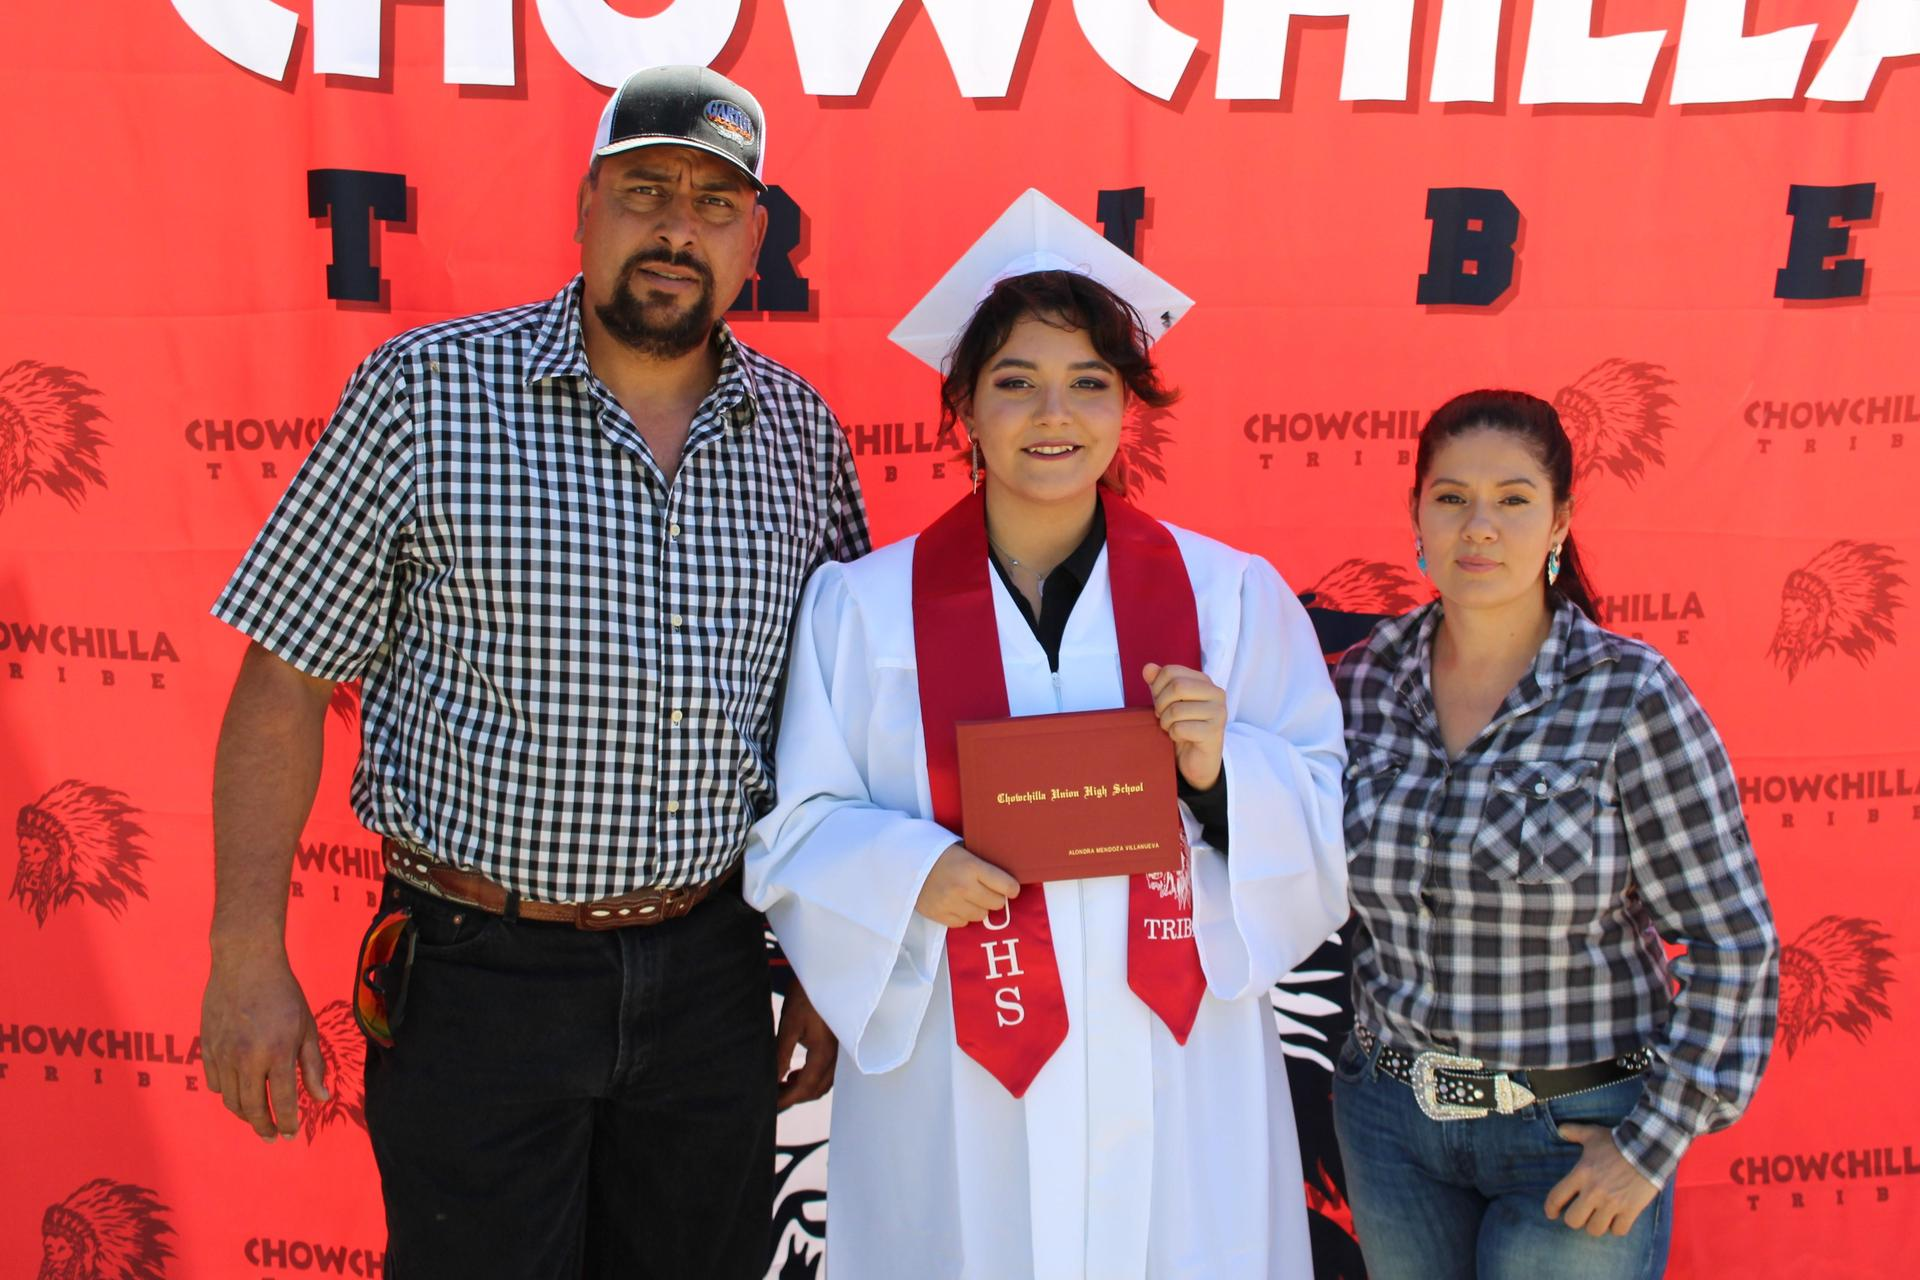 Alondra Villanueva and family